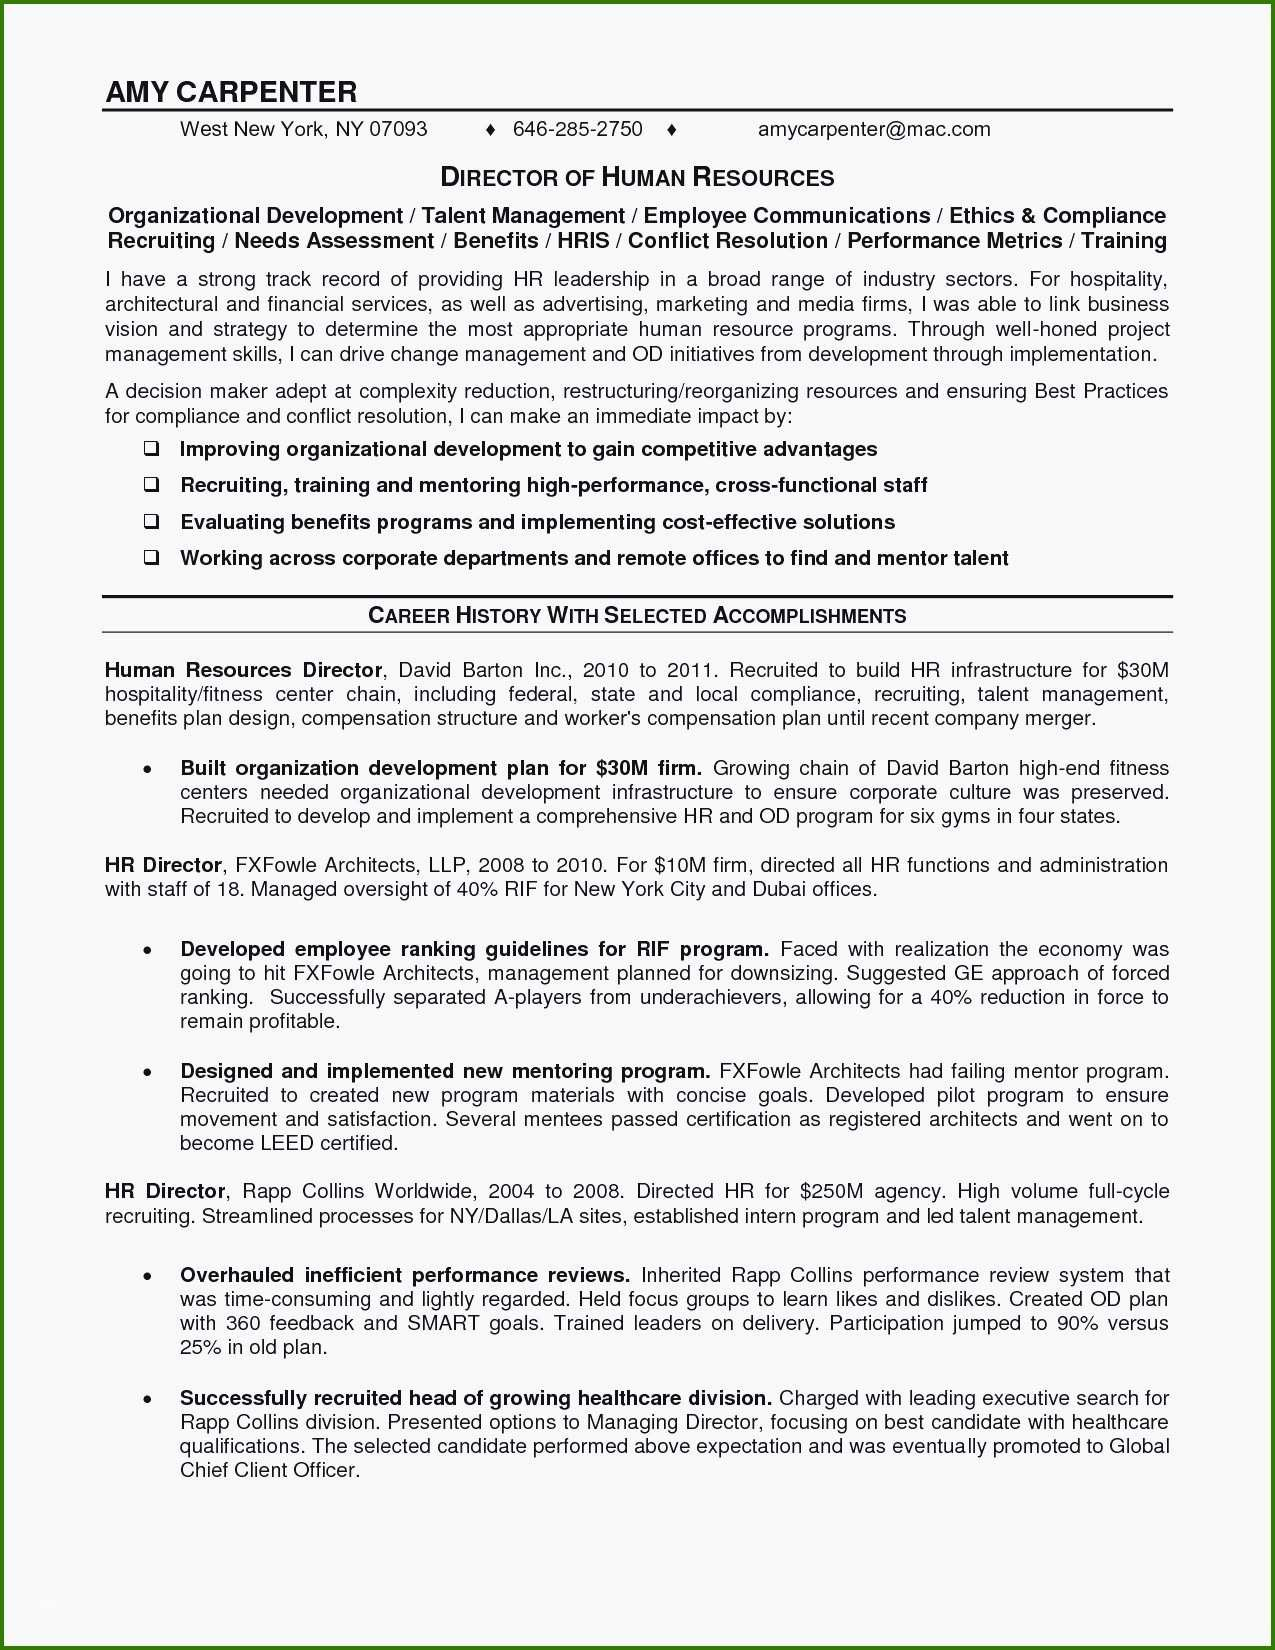 Letter Of Intent Vorlage Phänomenal Letter Intent Template Samples In Leed Letter Template